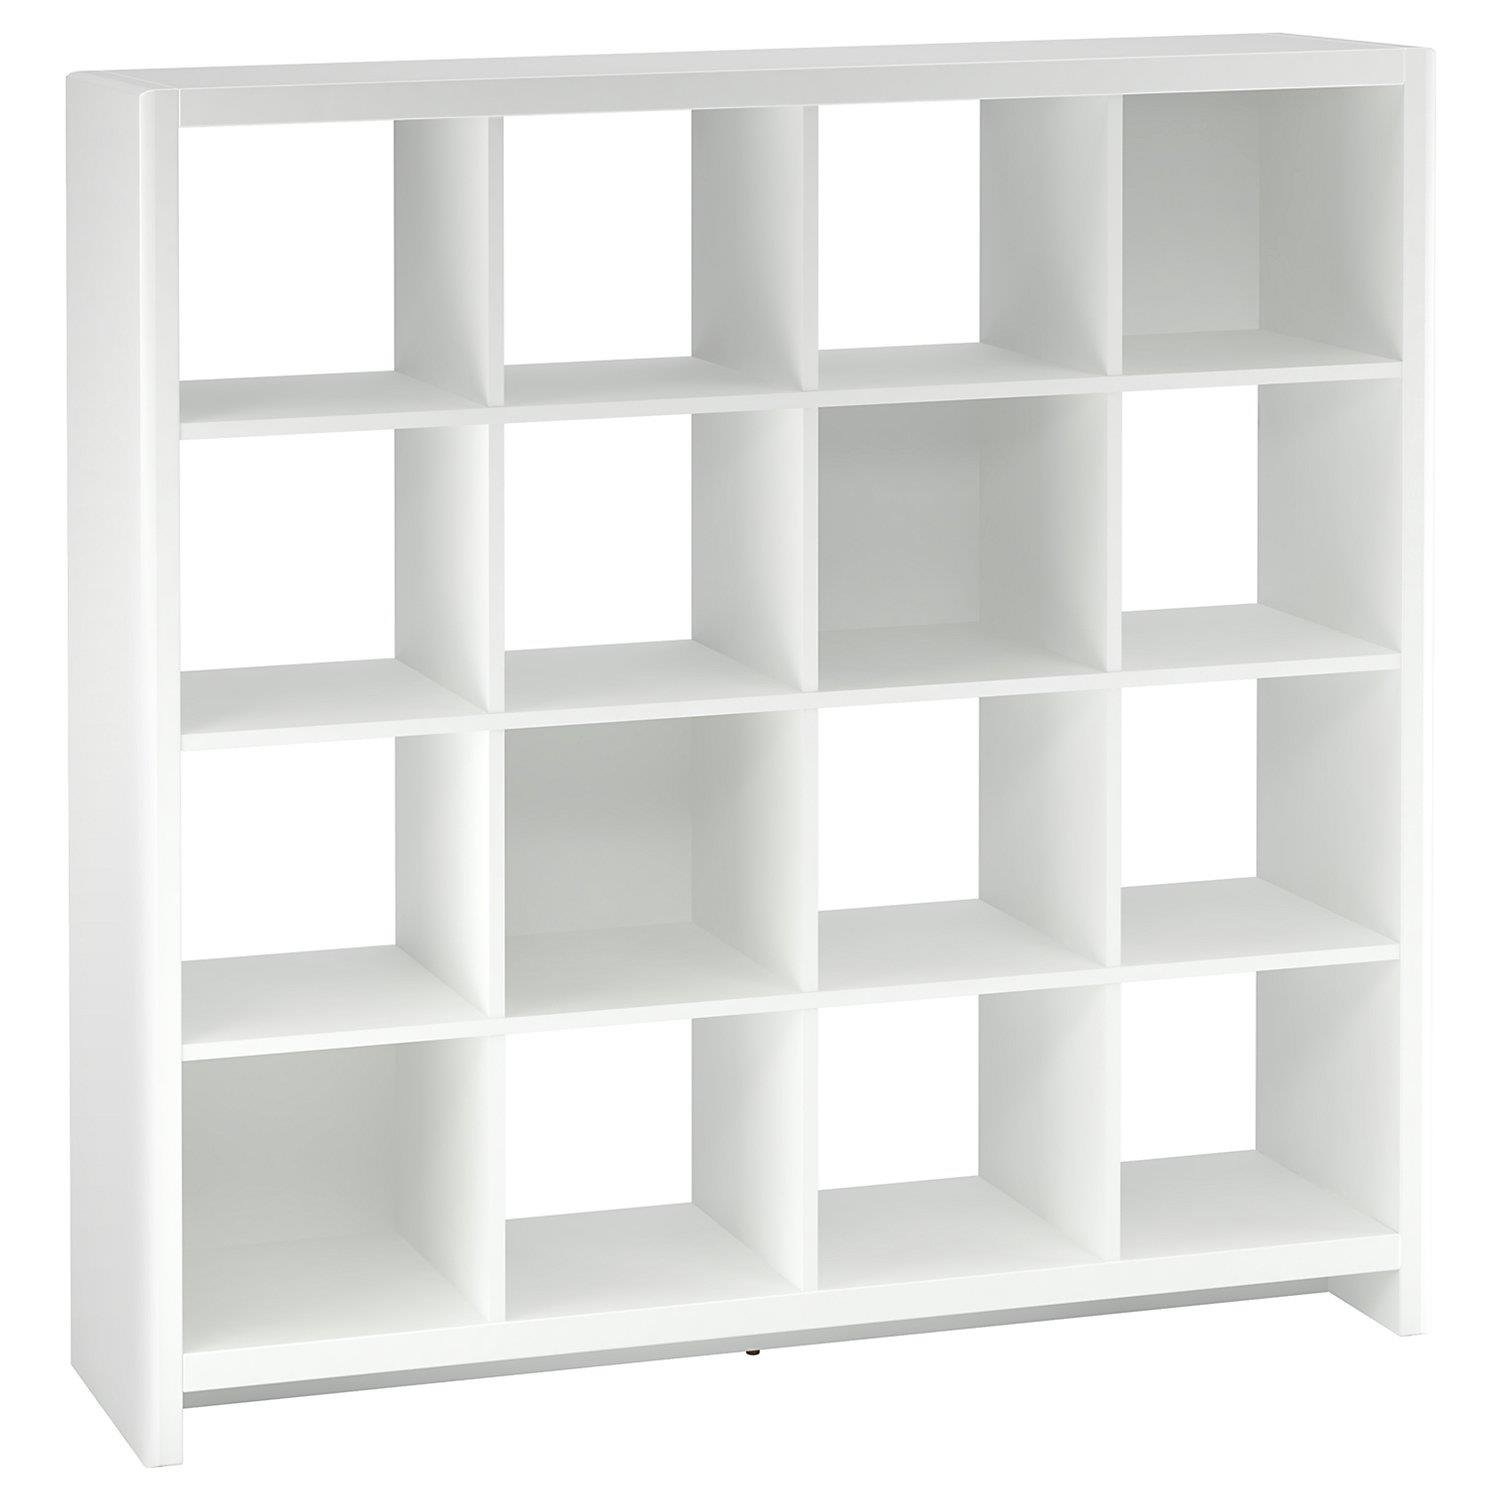 Kathy Ireland New York Skyline 16-Cube Bookcase/Room Divider